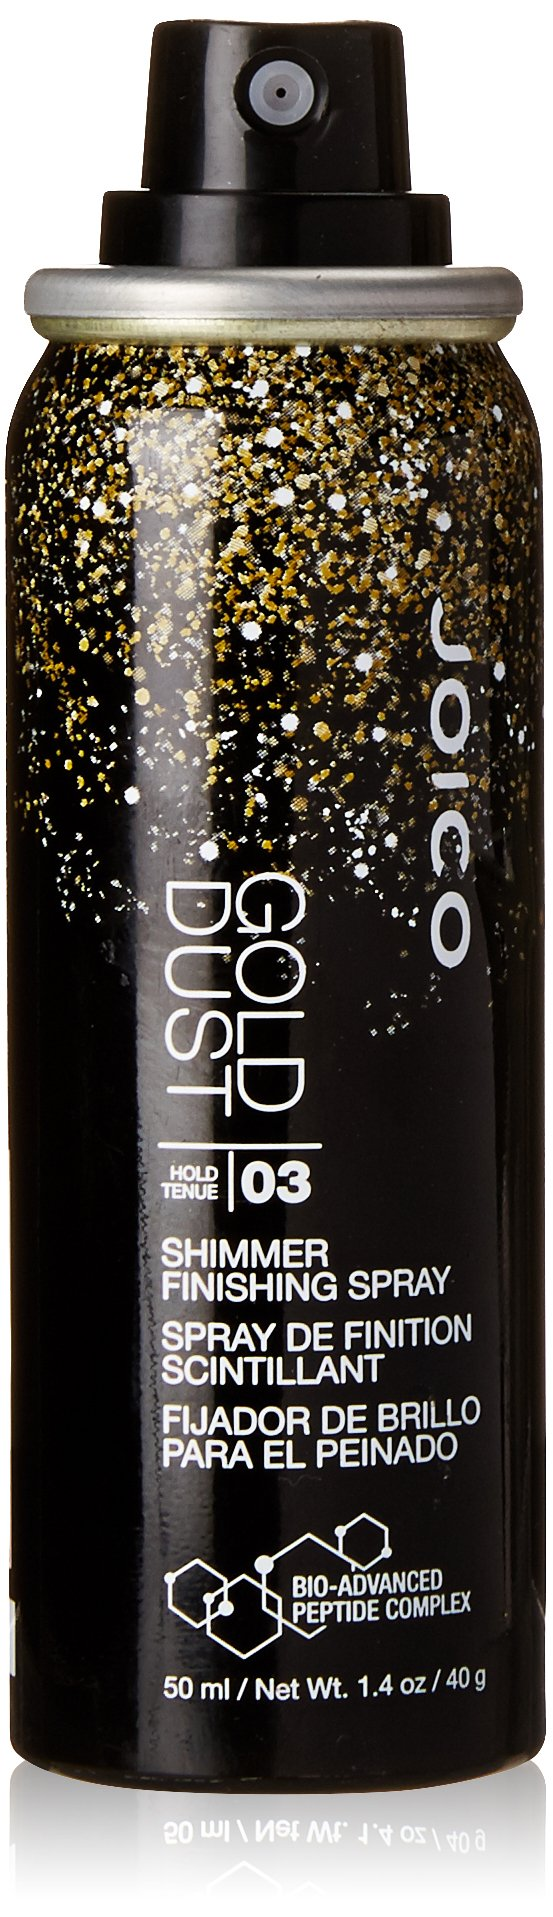 Joico Dust Shimmer Spray, Gold, 1.4 Fluid Ounce